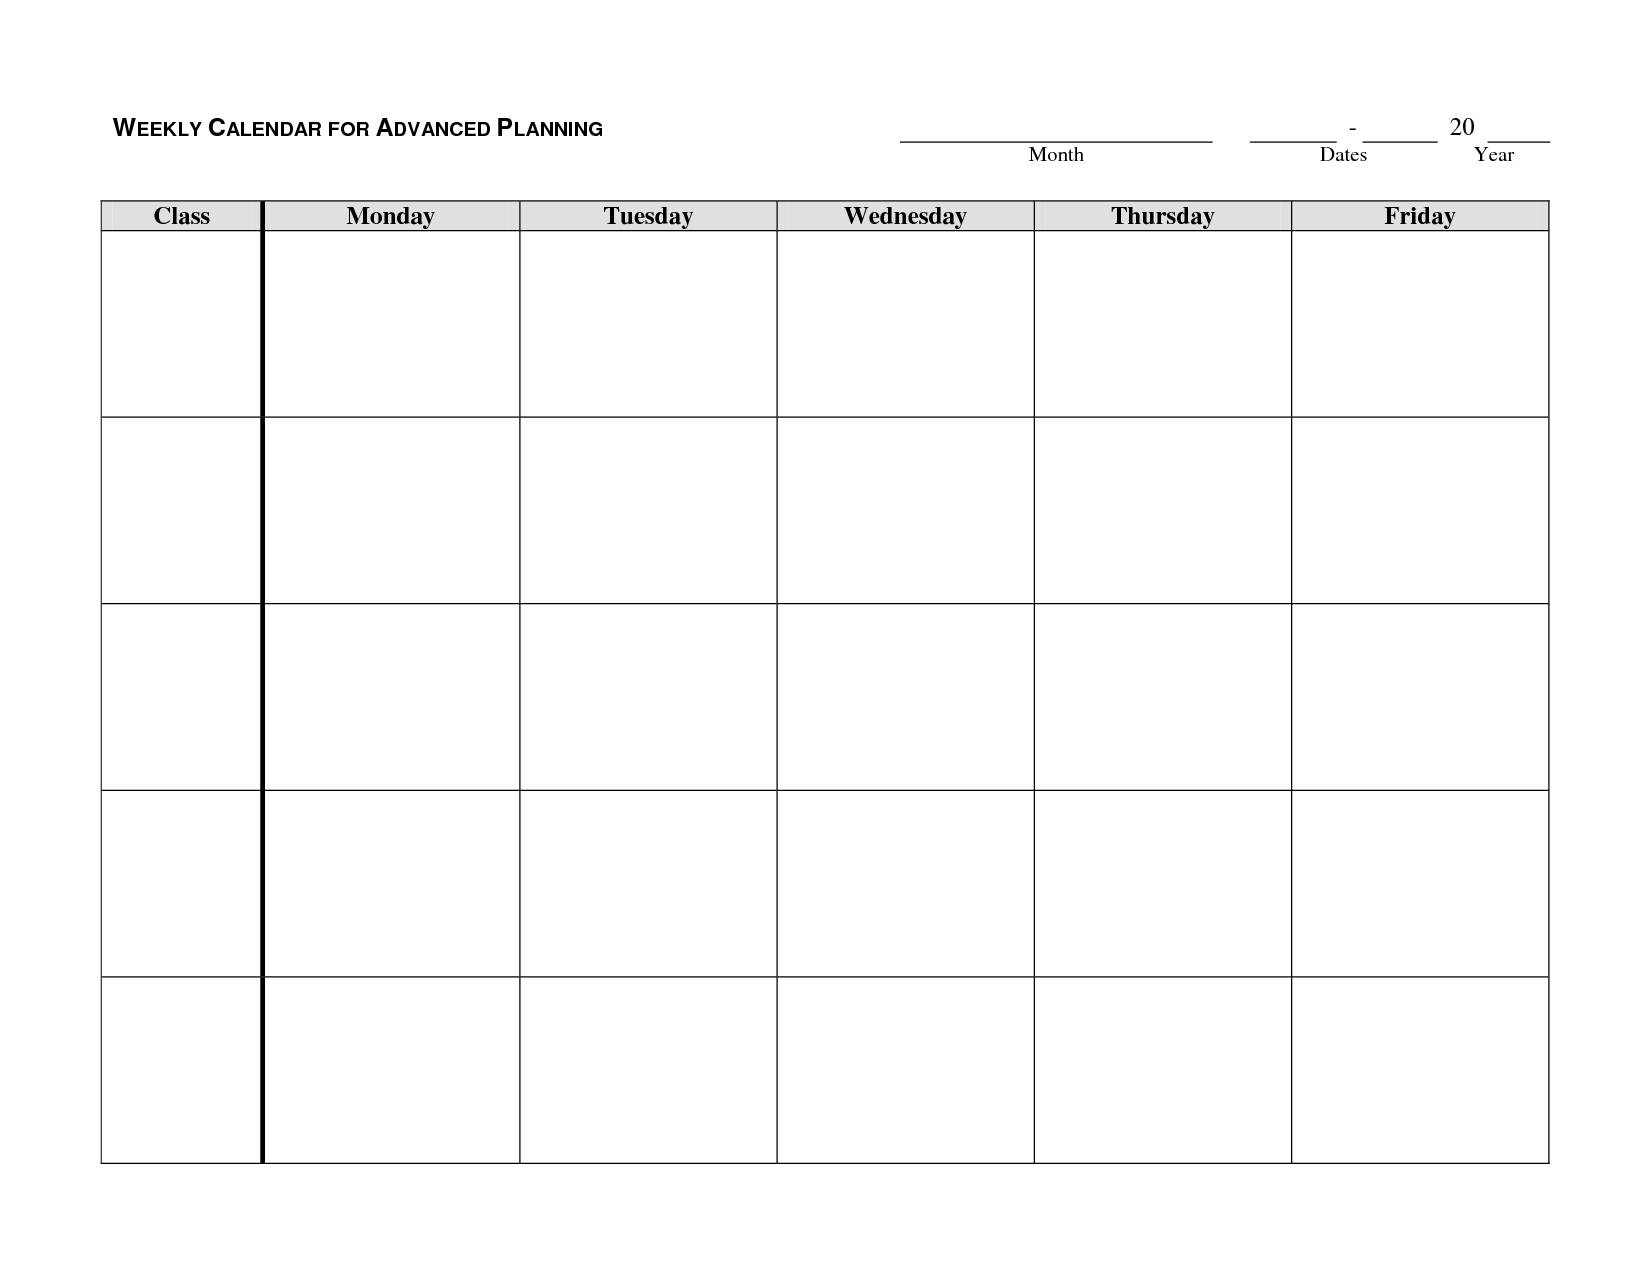 Weekly Calendar Template Monday To Friday | Calendar Weekly Calendar Monday - Friday